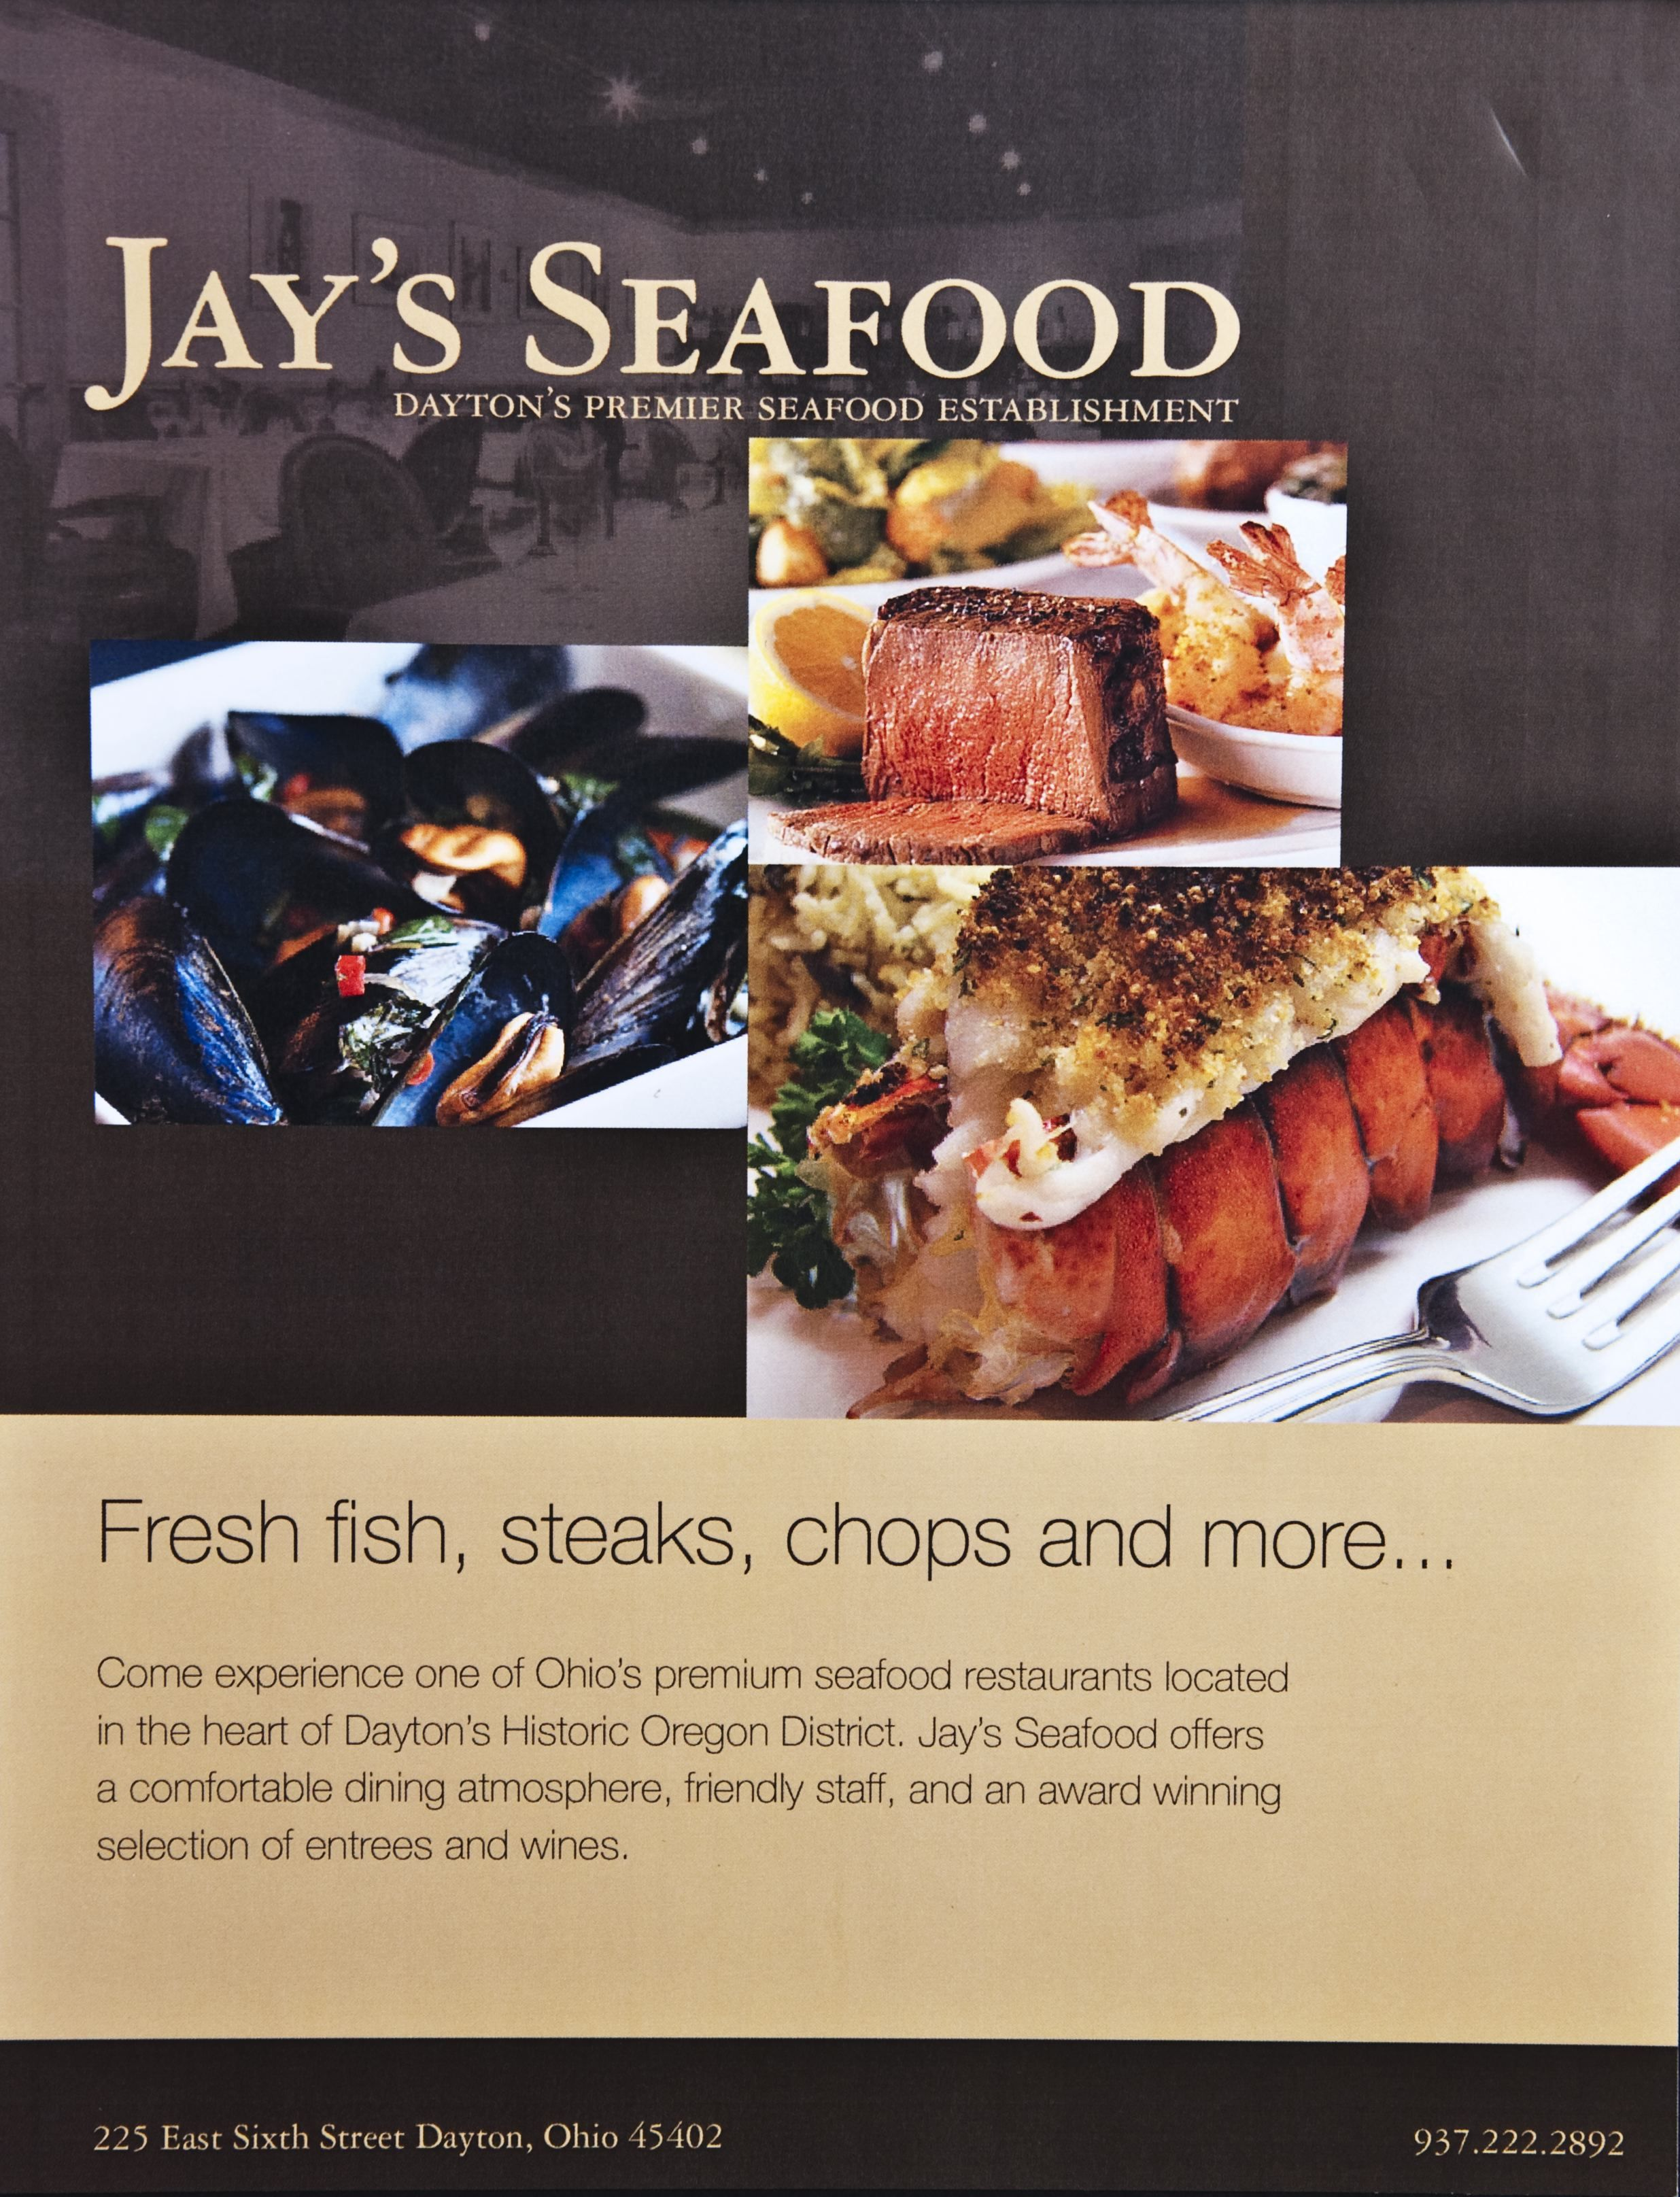 Jay S Seafood Dayton Ohio Locally Owned And Operated By Haverstick